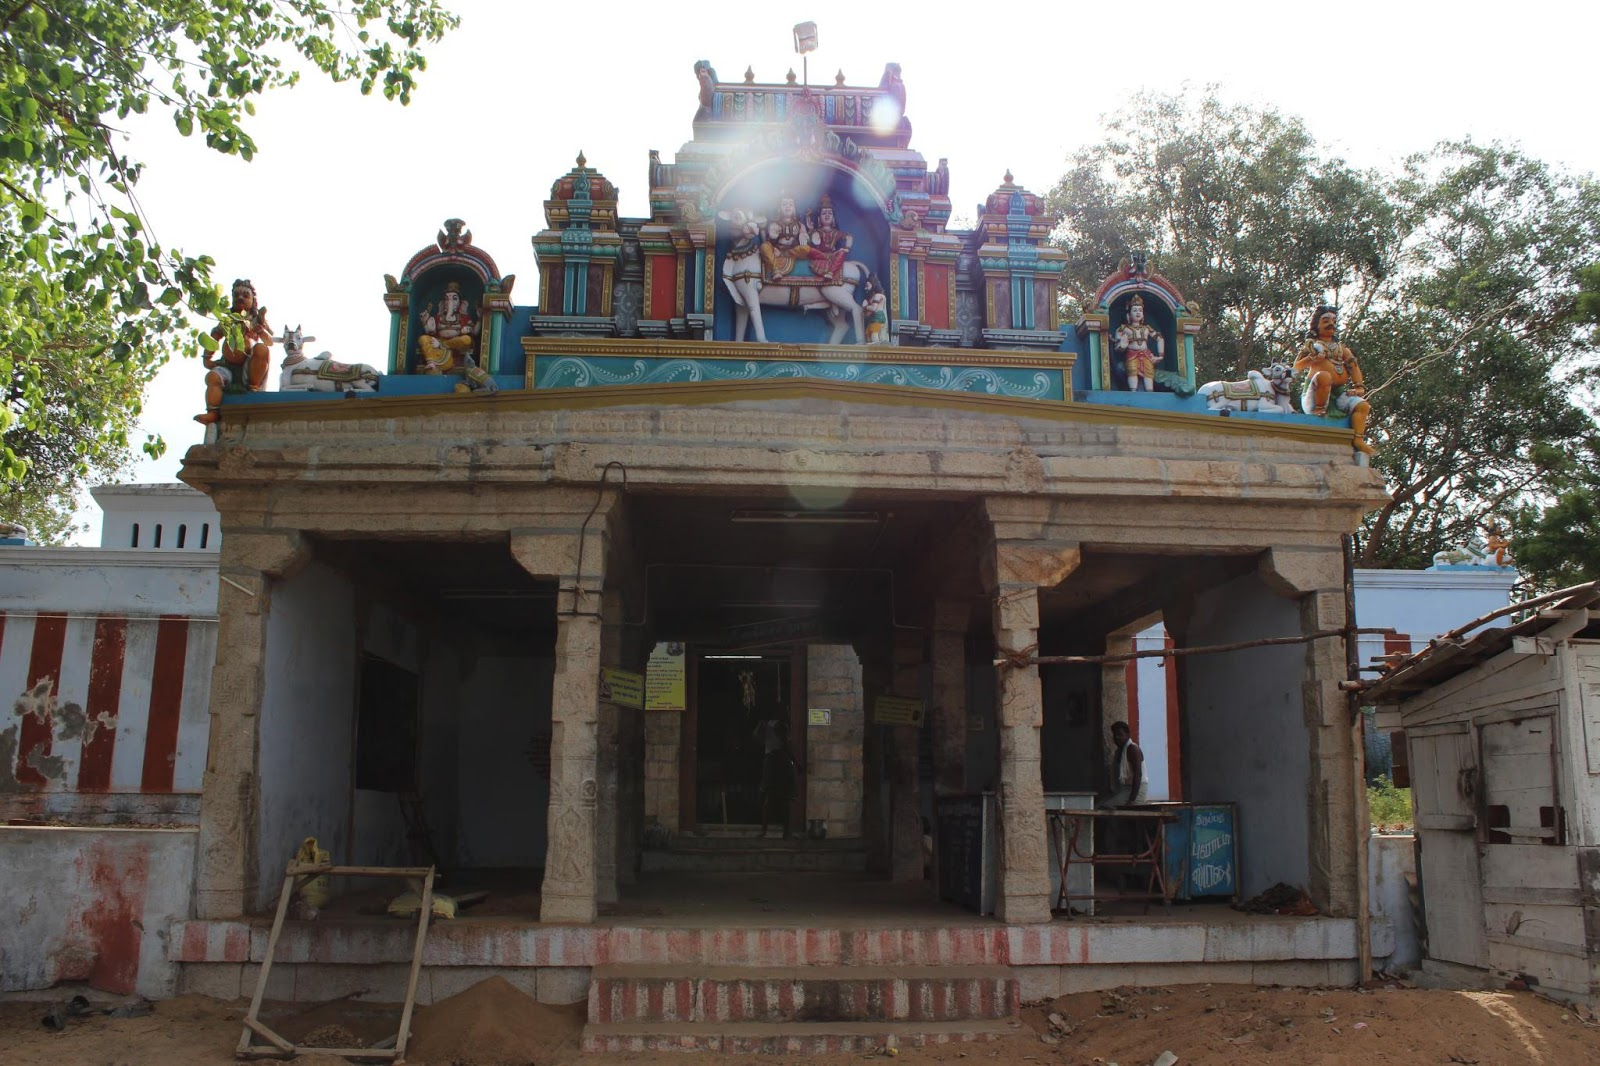 There are 2 ganesha idol in the entrance of the sri ganesha shrine instead of dwarapalakas this is rarest in any vinayagar temple